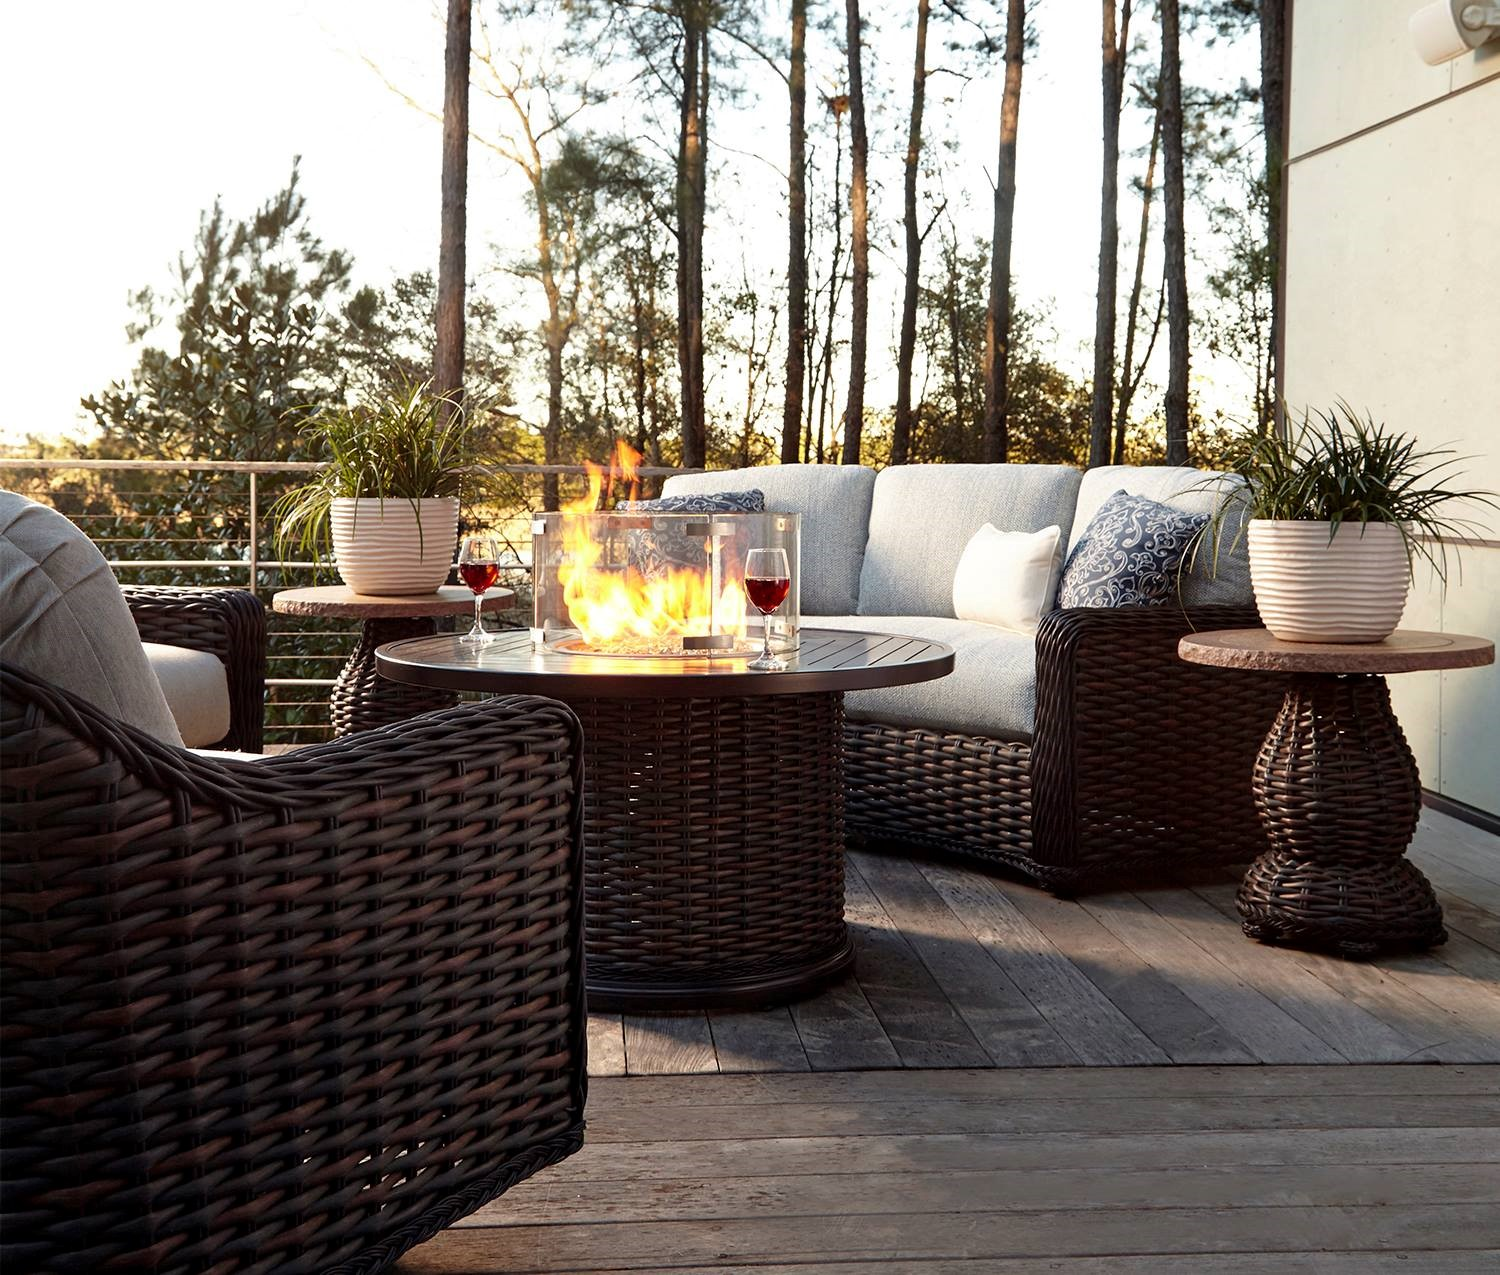 5 Stylish Patio Furniture and Accessories for Summer